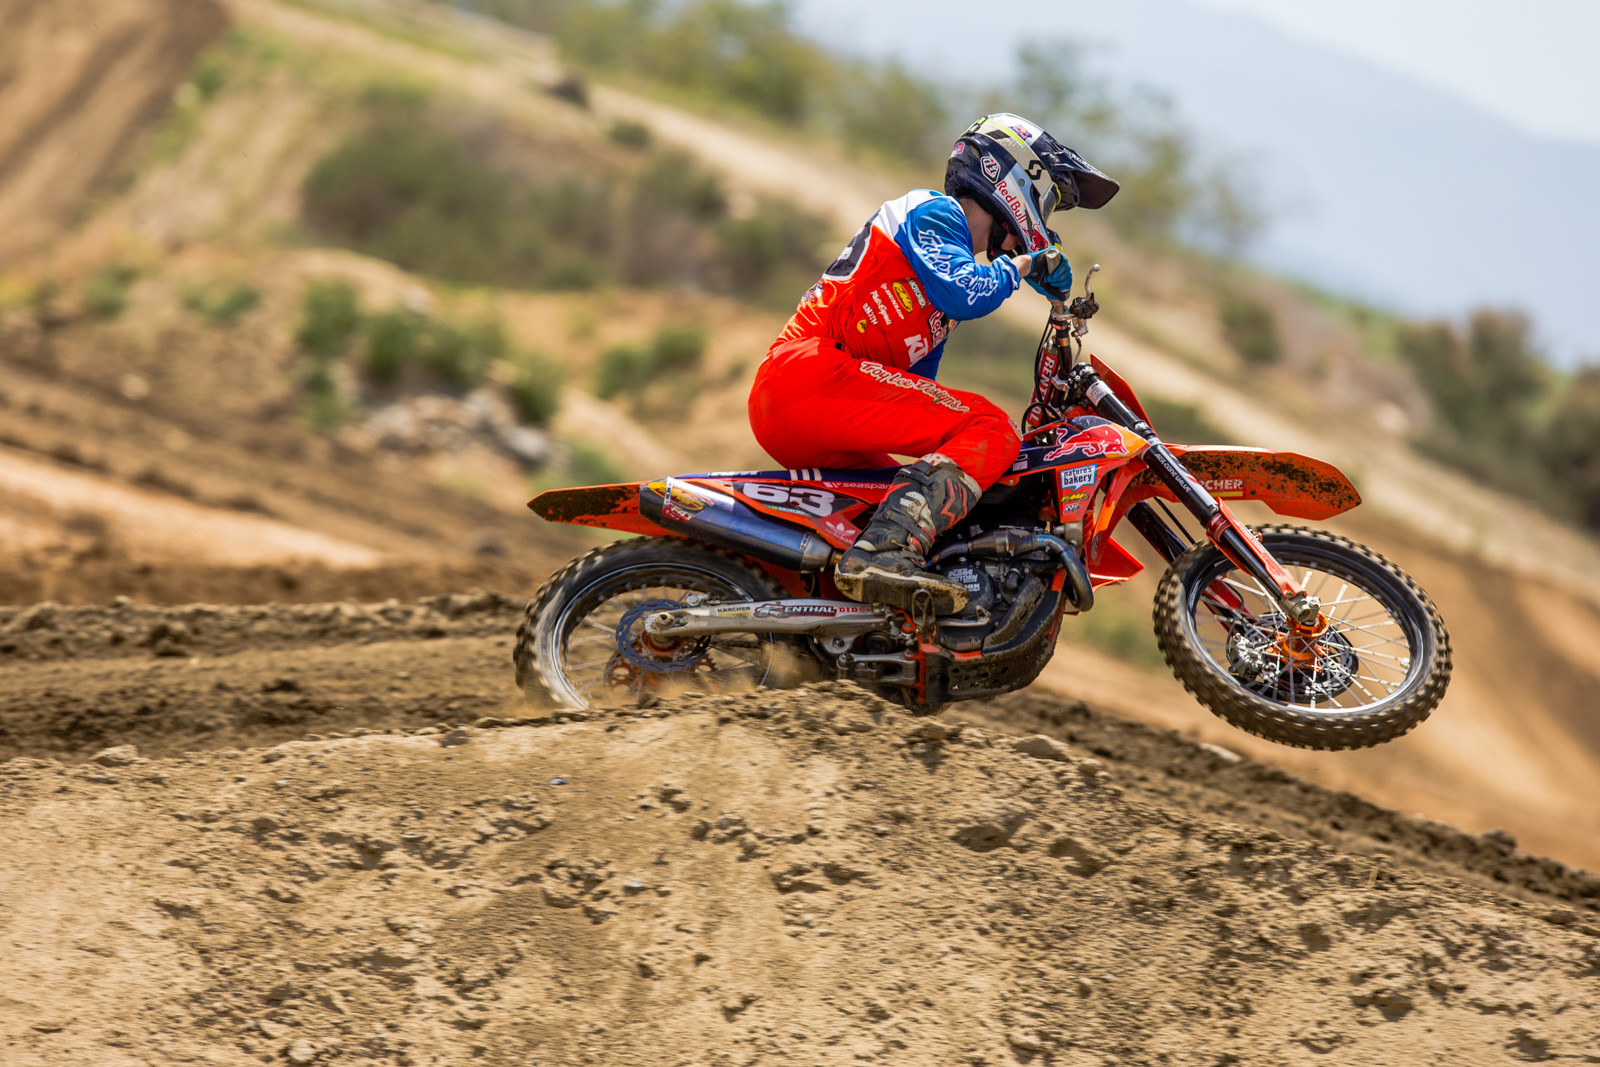 Troy Lee Designs KTM am rider, Pierce Brown, was out doing sprints with the whole pro squad.